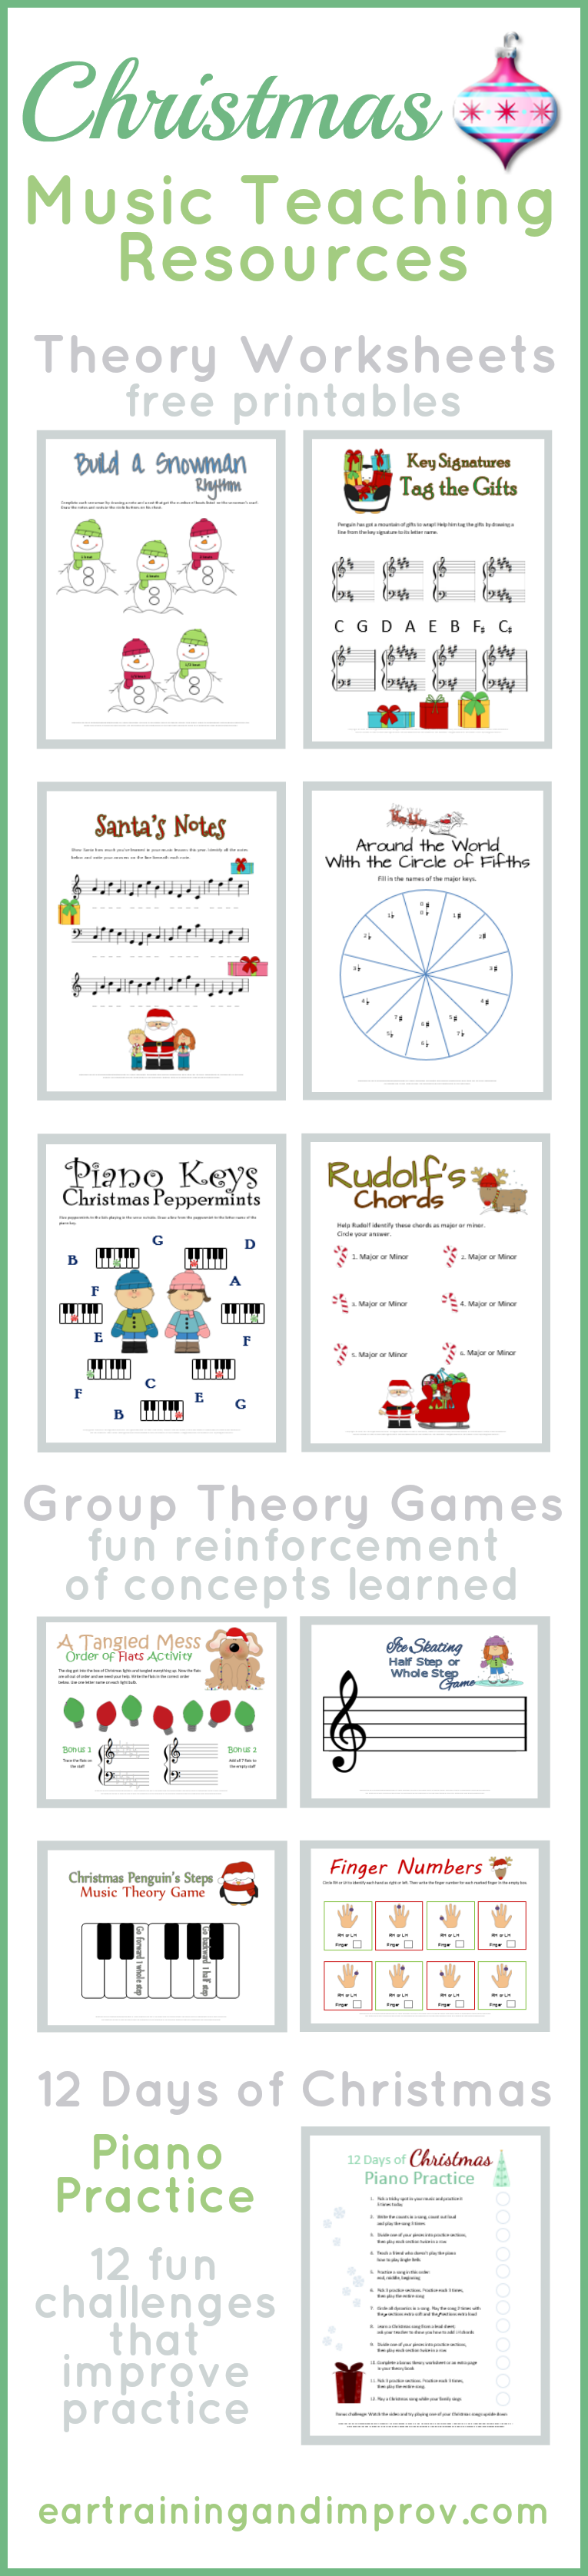 photo relating to Free Printable Christmas Sheet Music for Piano known as Xmas Songs Principle Worksheets - 20+ No cost Printables